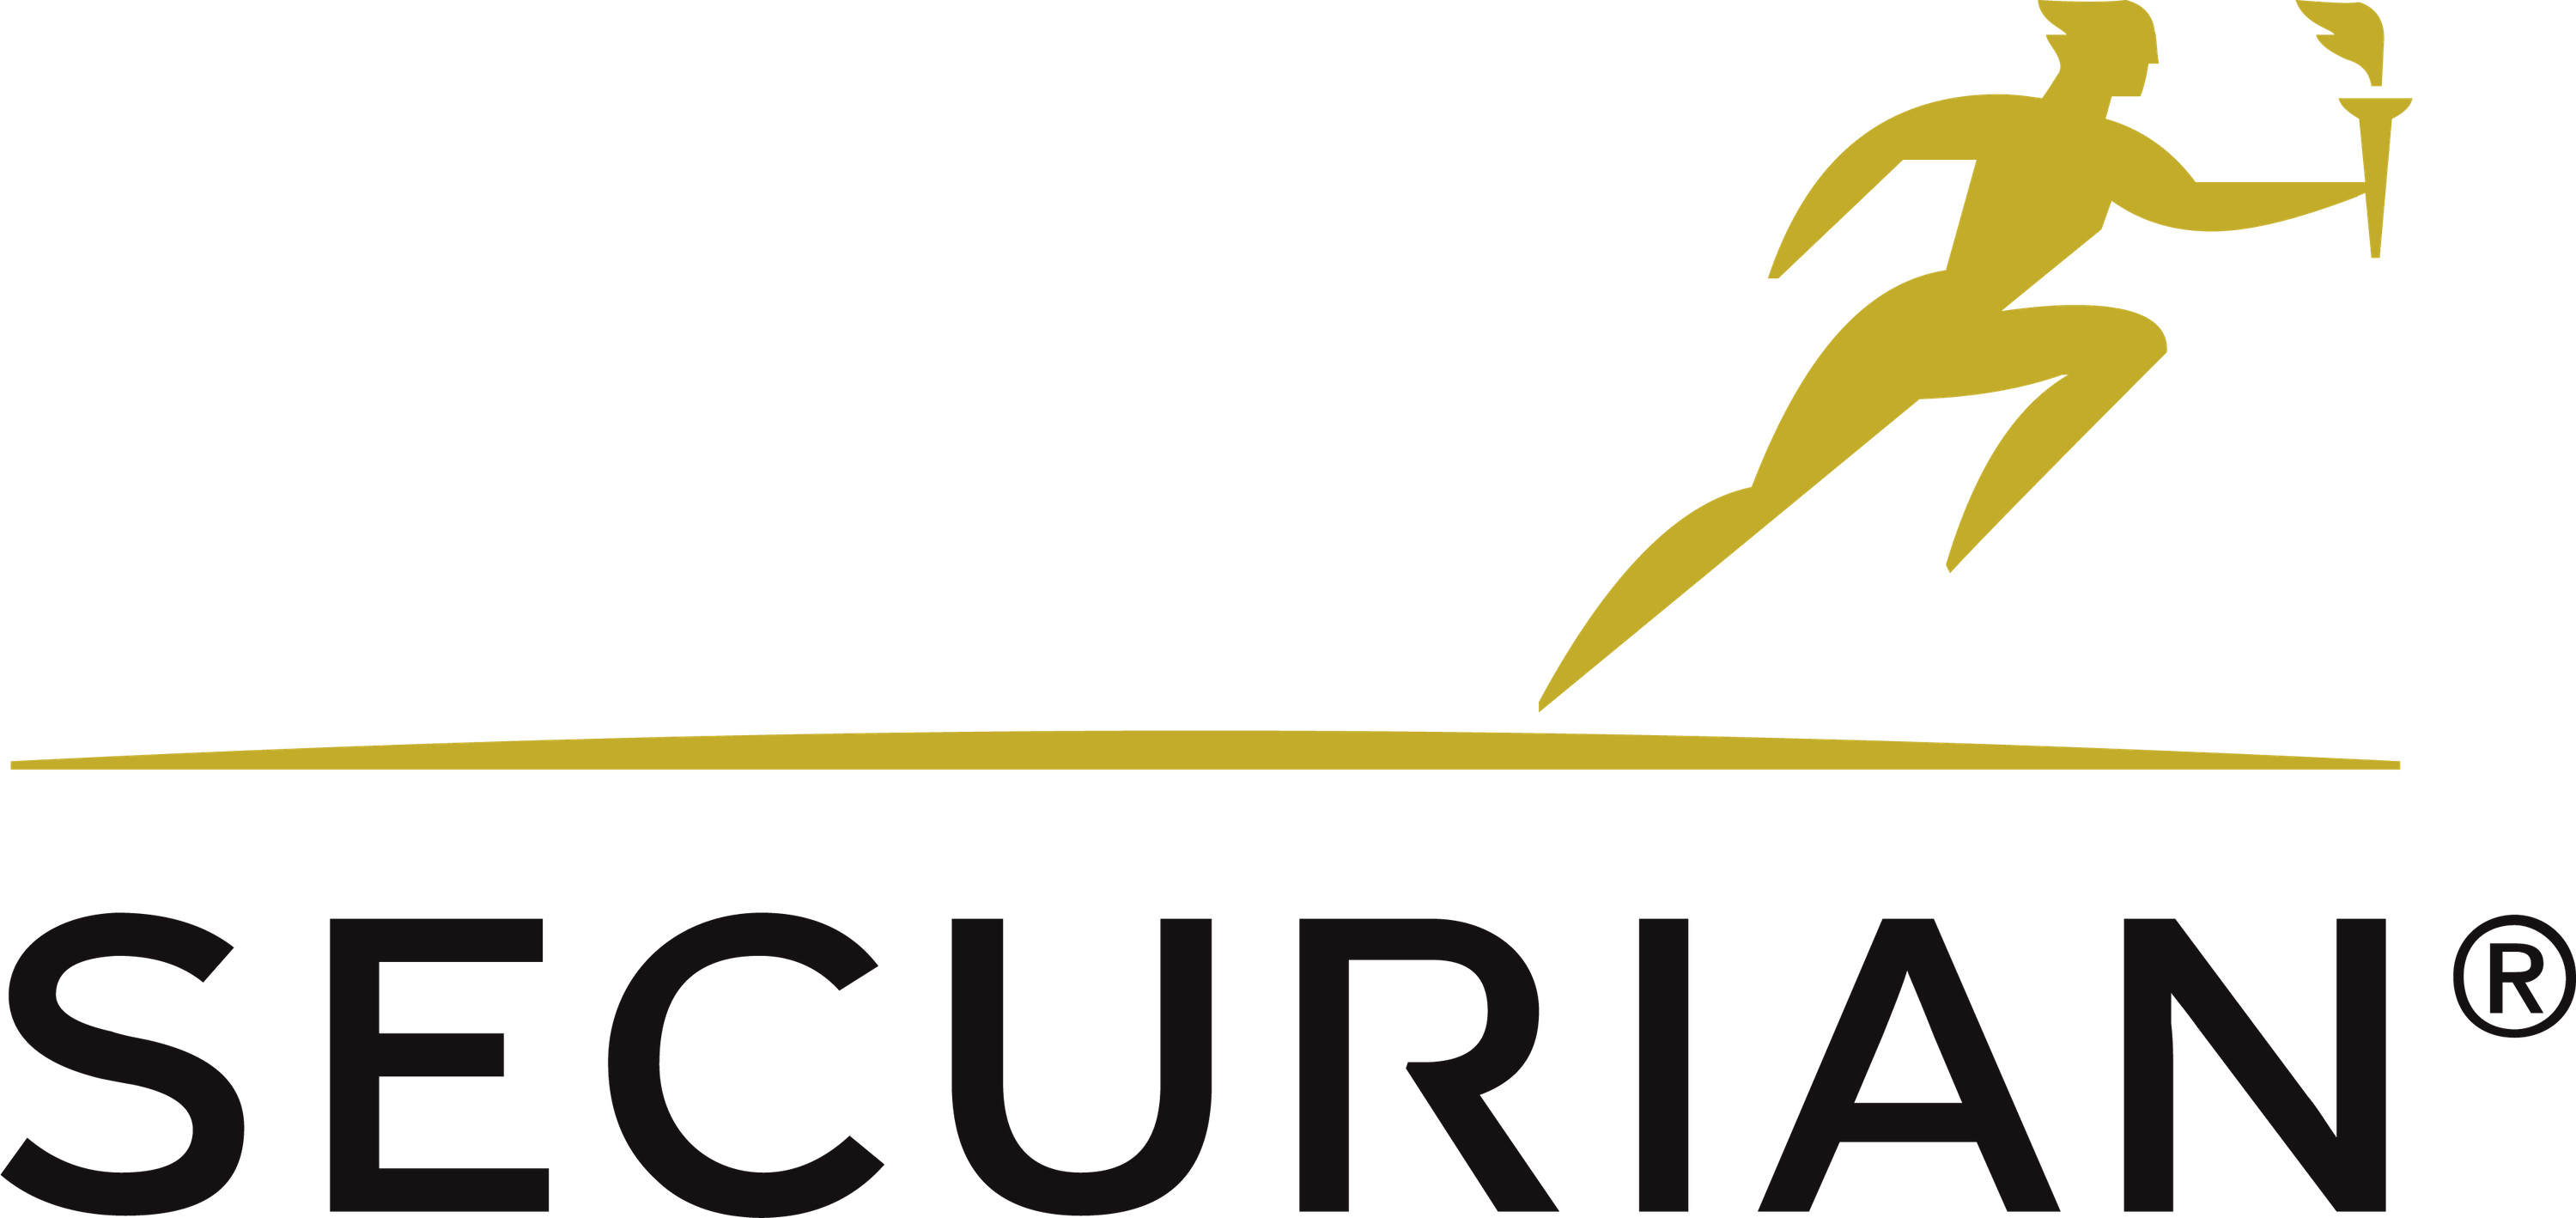 securian official